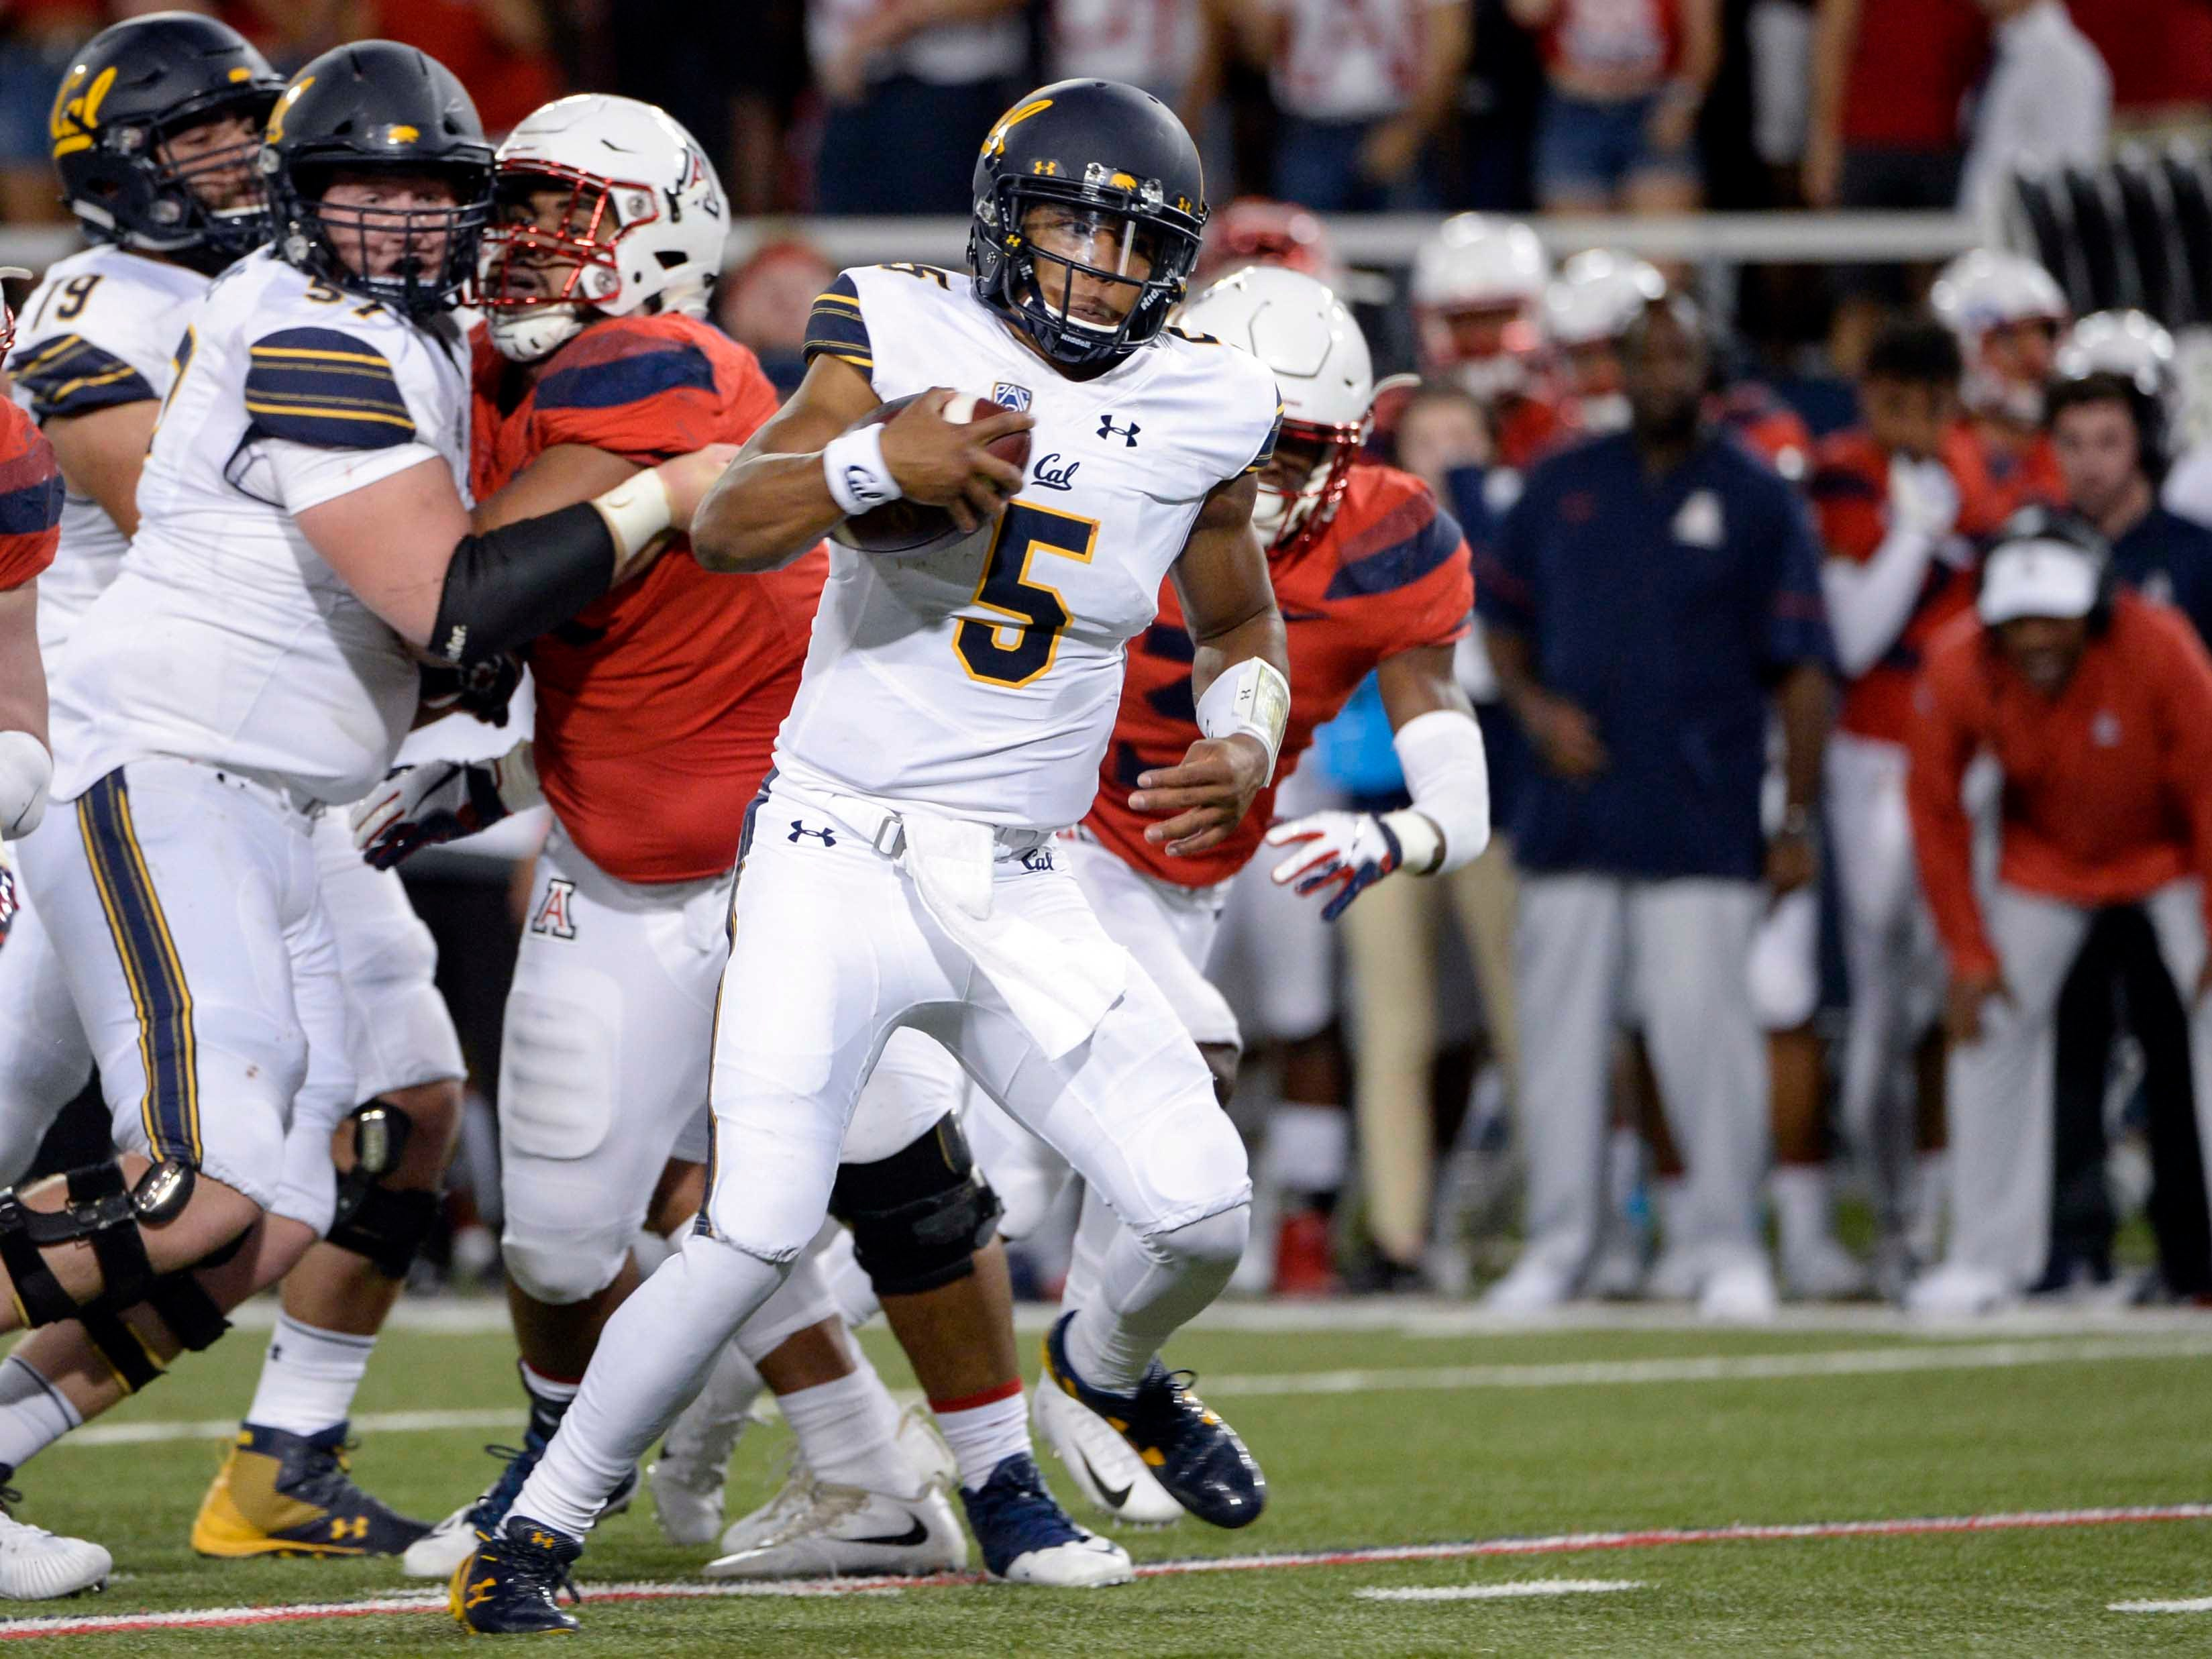 Oct 6, 2018; Tucson, AZ, USA; California Golden Bears quarterback Brandon McIlwain (5) runs the ball for a touchdown against the Arizona Wildcats during the first half at Arizona Stadium. Mandatory Credit: Casey Sapio-USA TODAY Sports